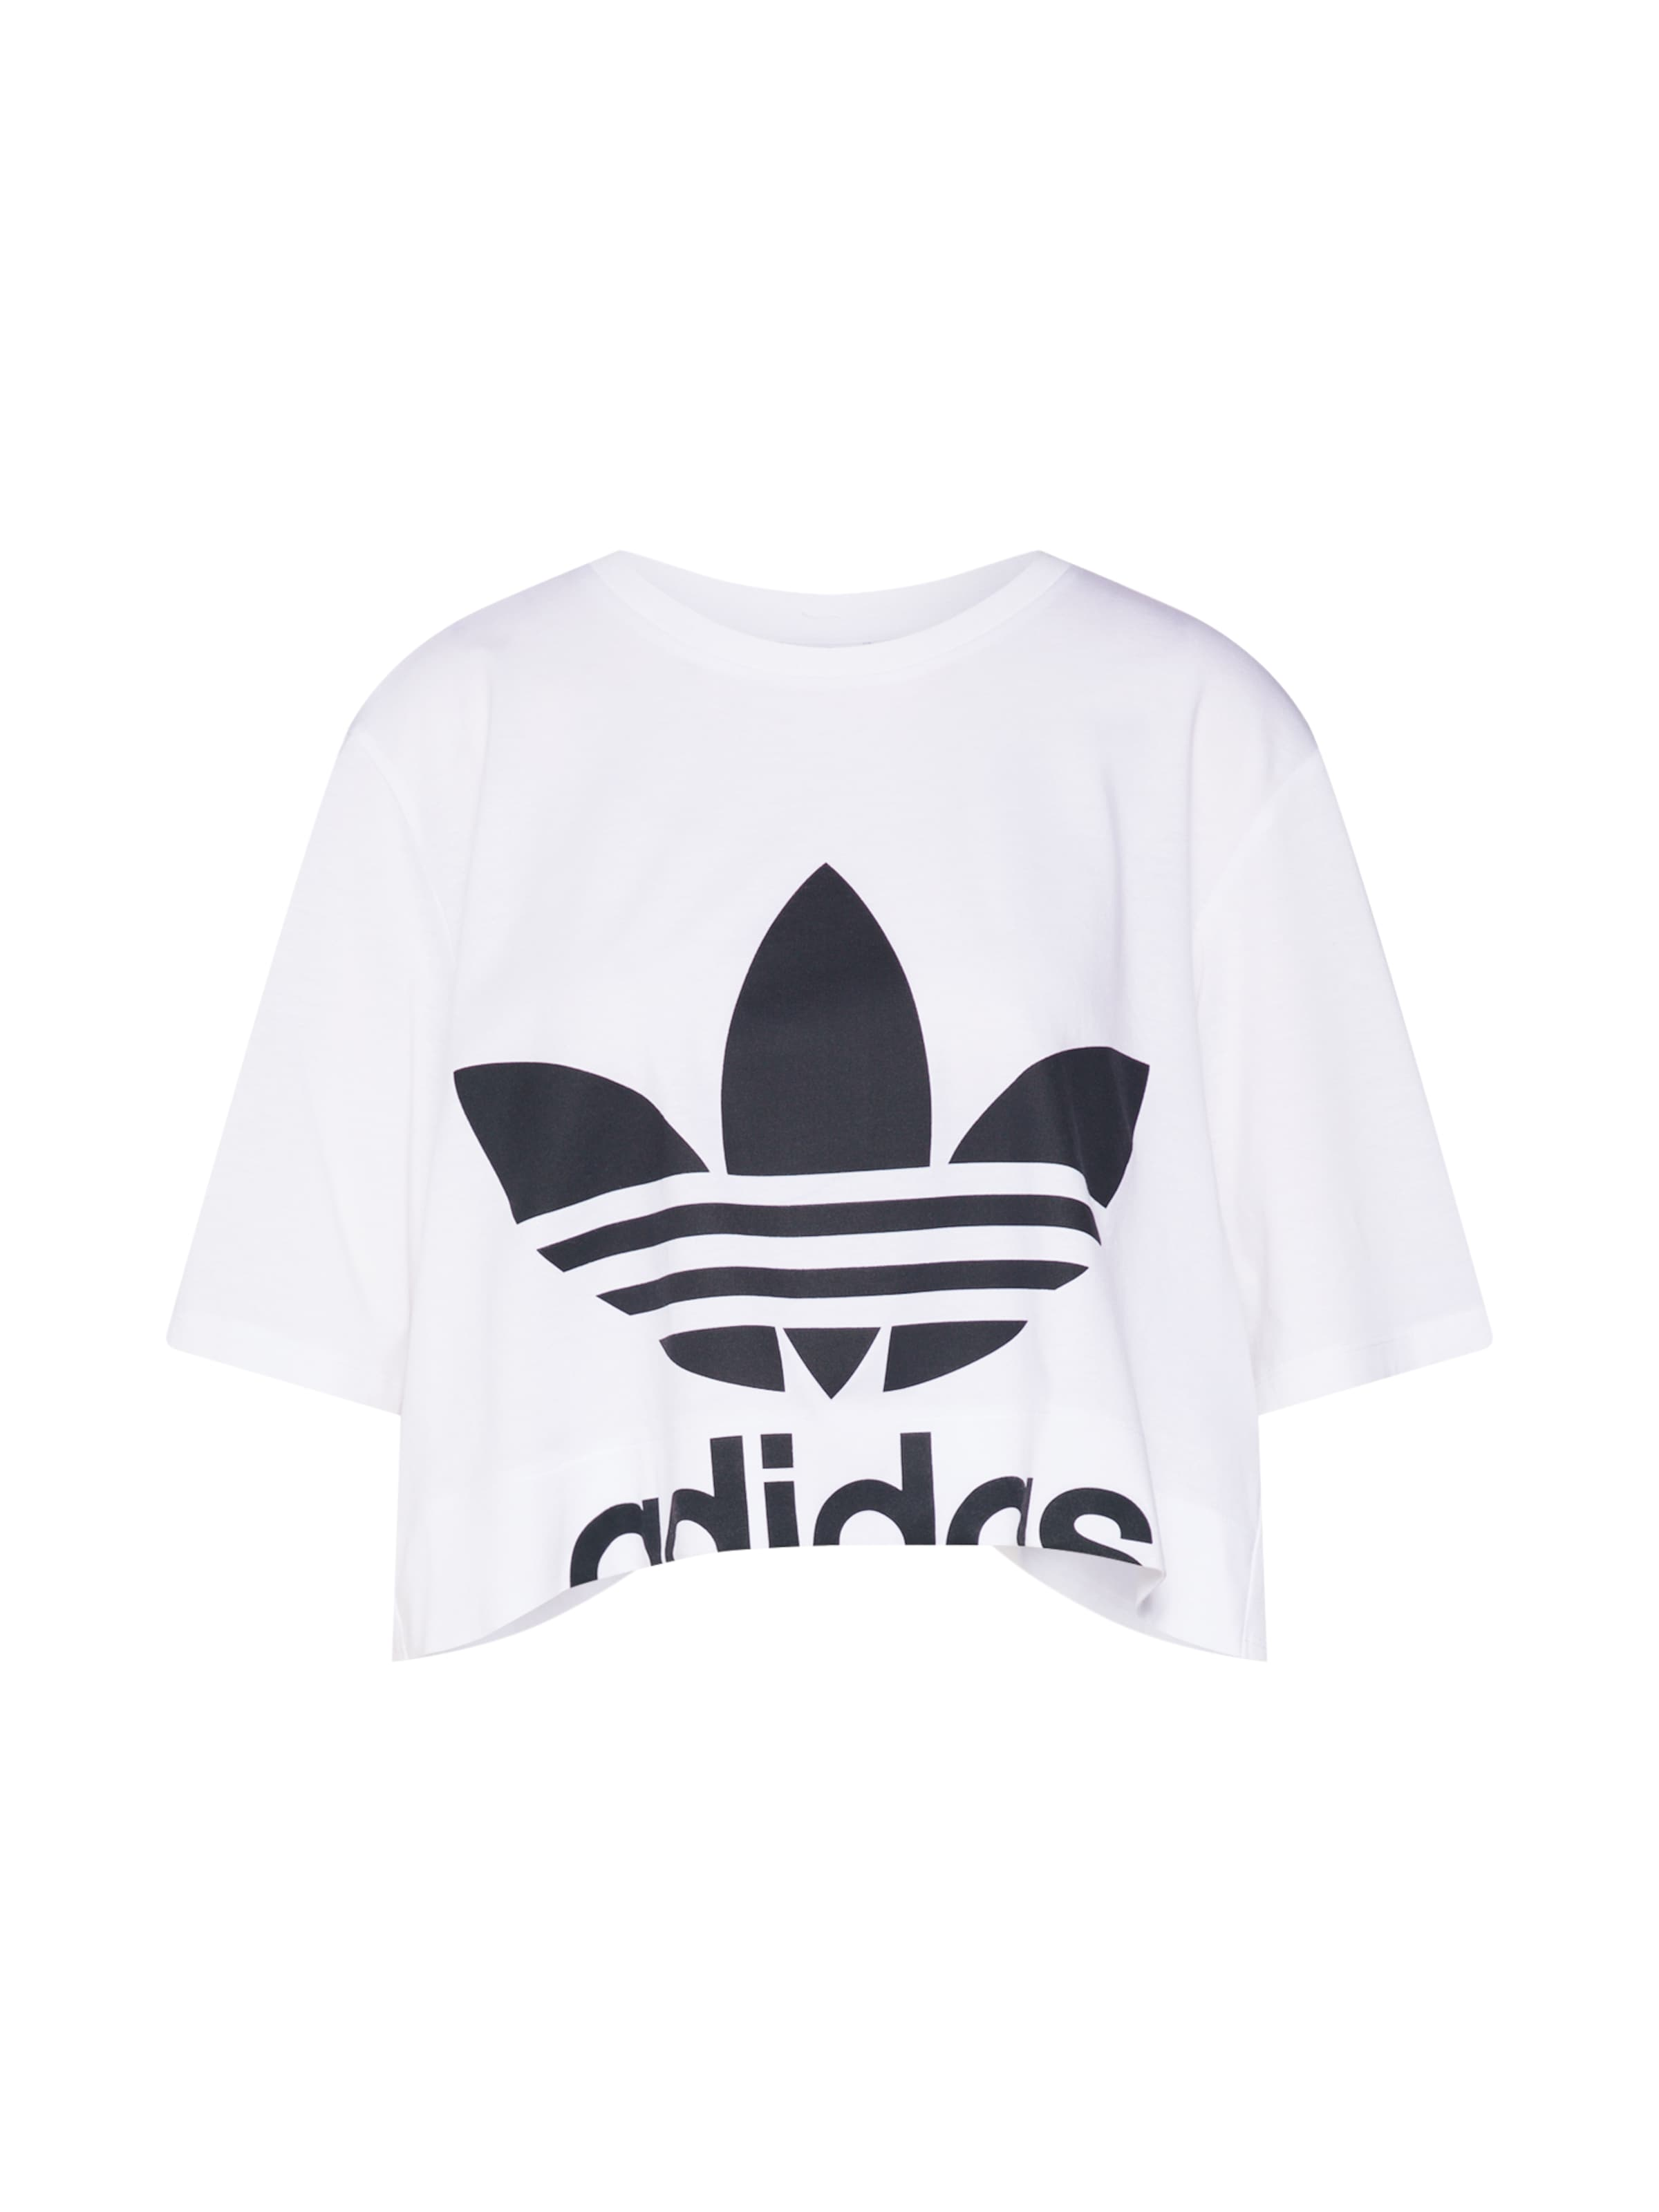 out shirt Adidas Tee' T 'cut En Originals NoirBlanc 7ybgIvYf6